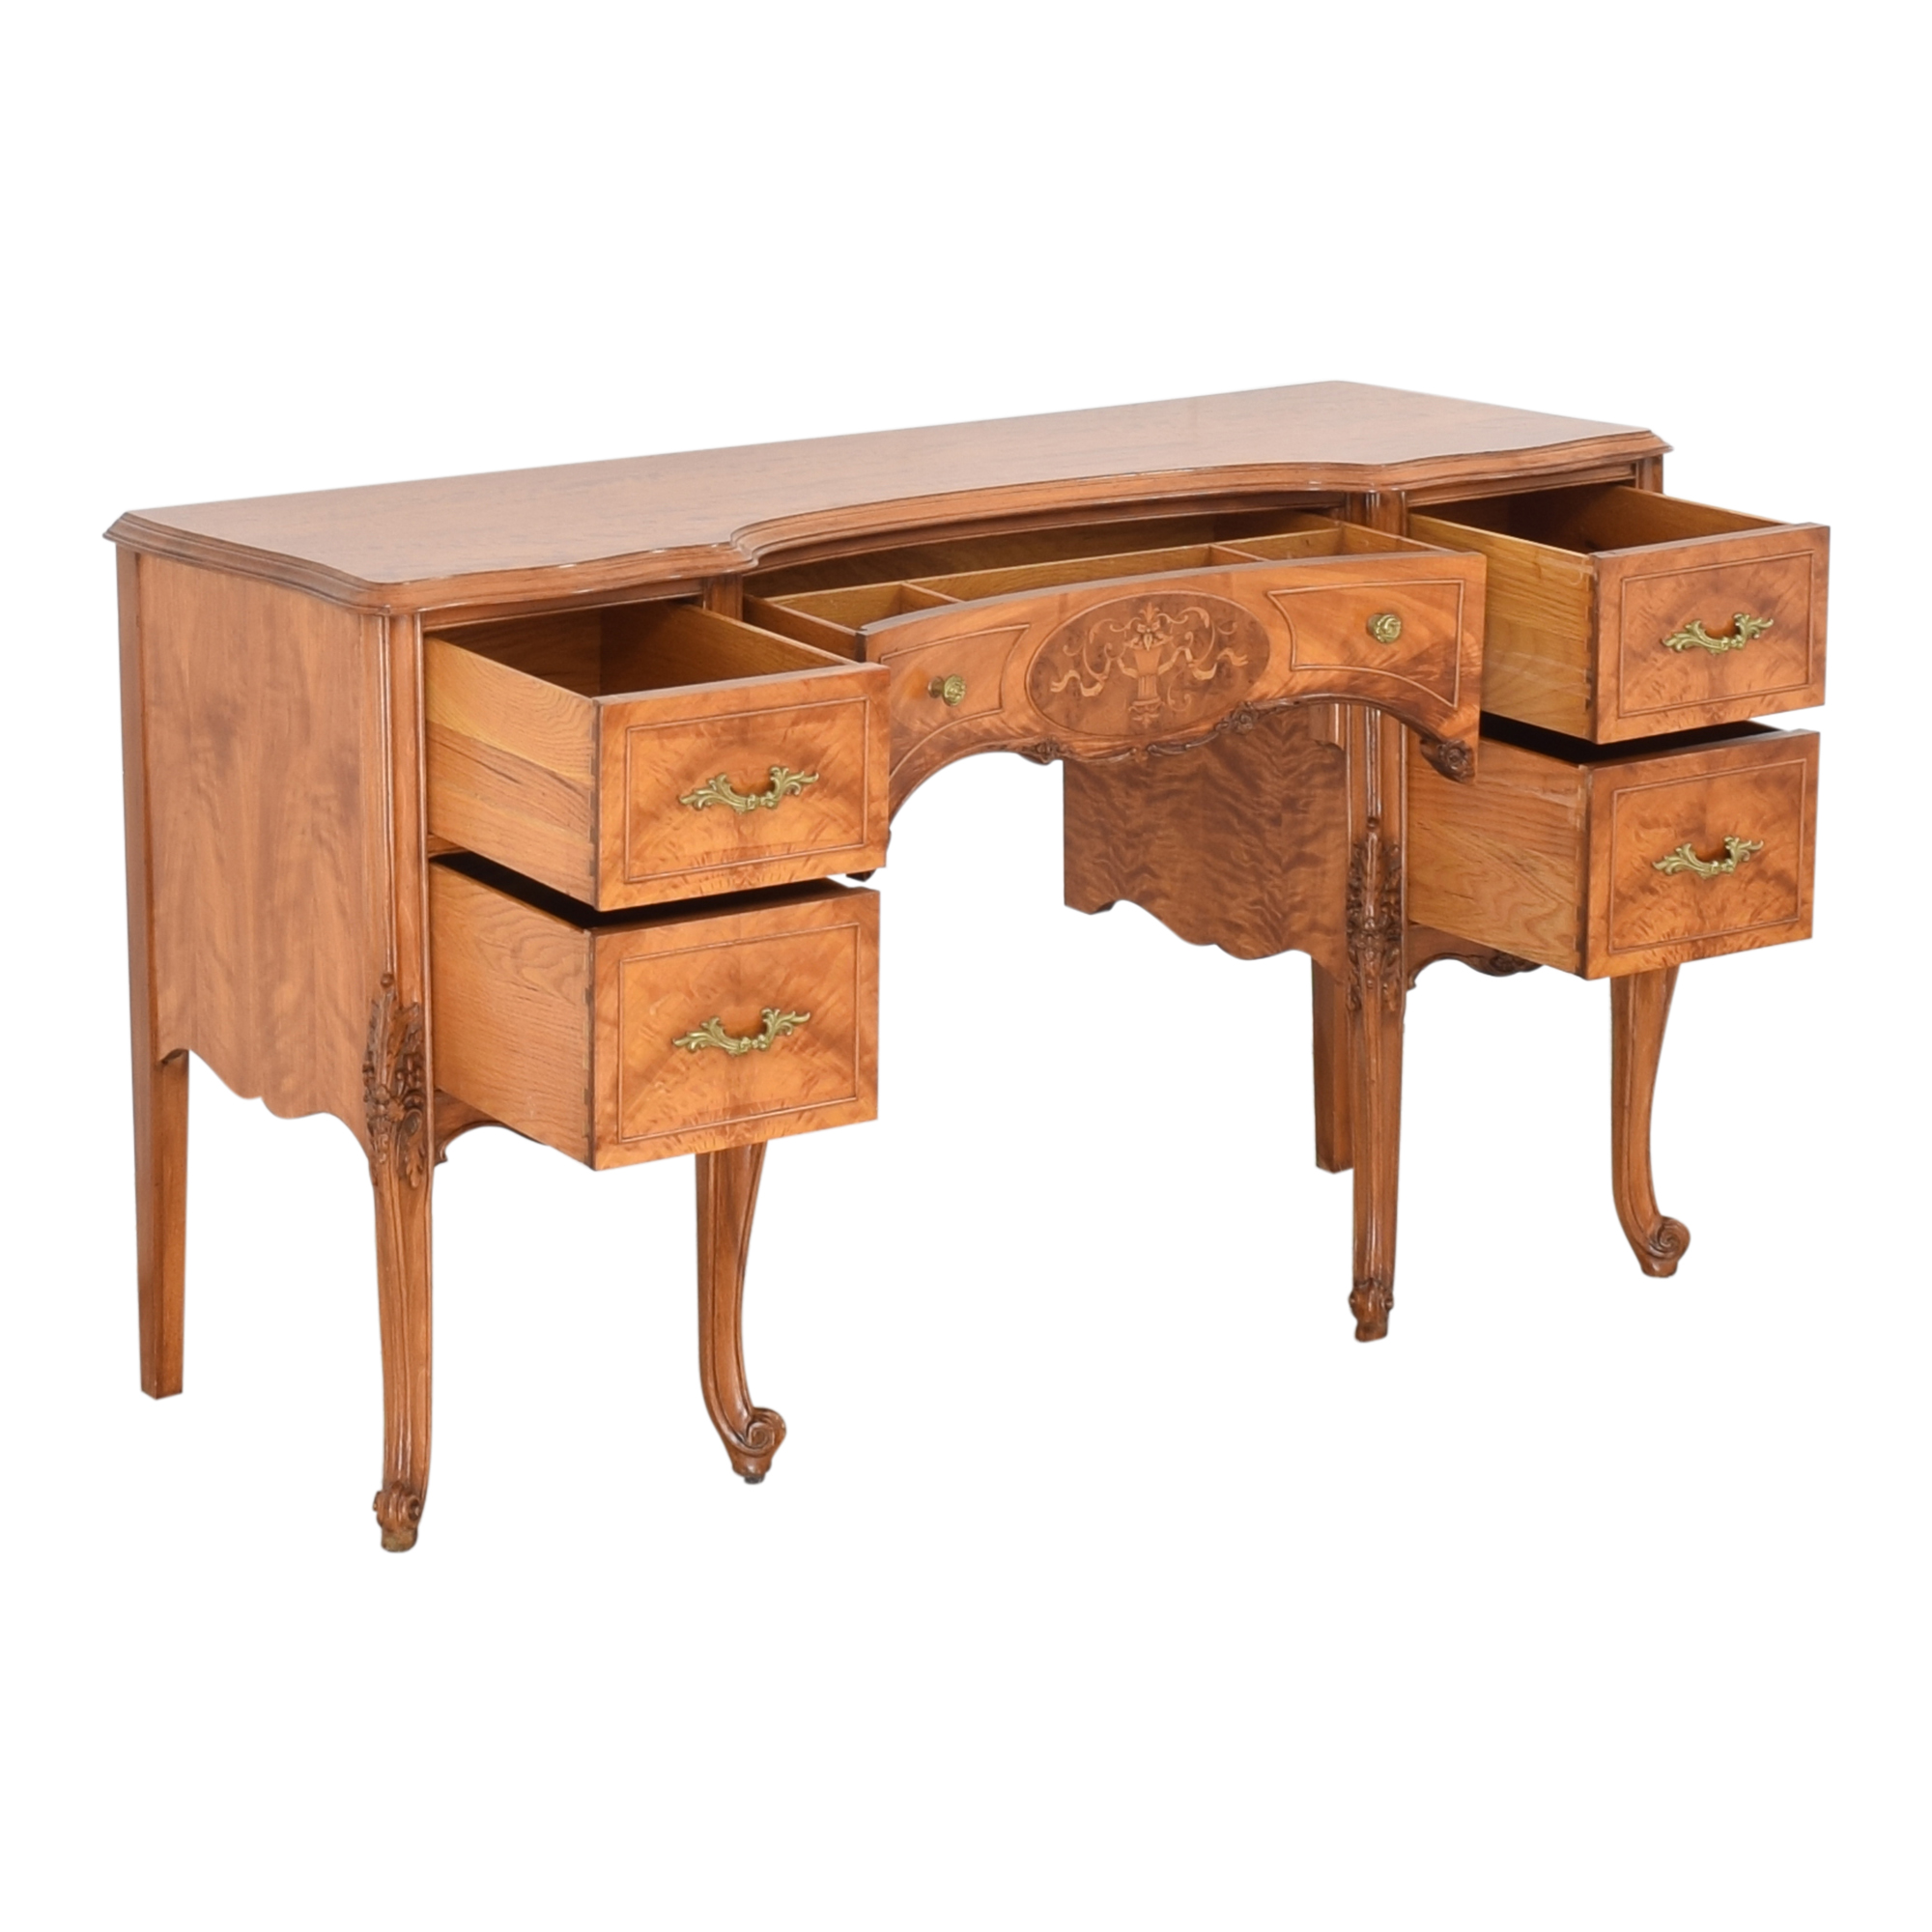 43 Off Antique Vanity Table Tables